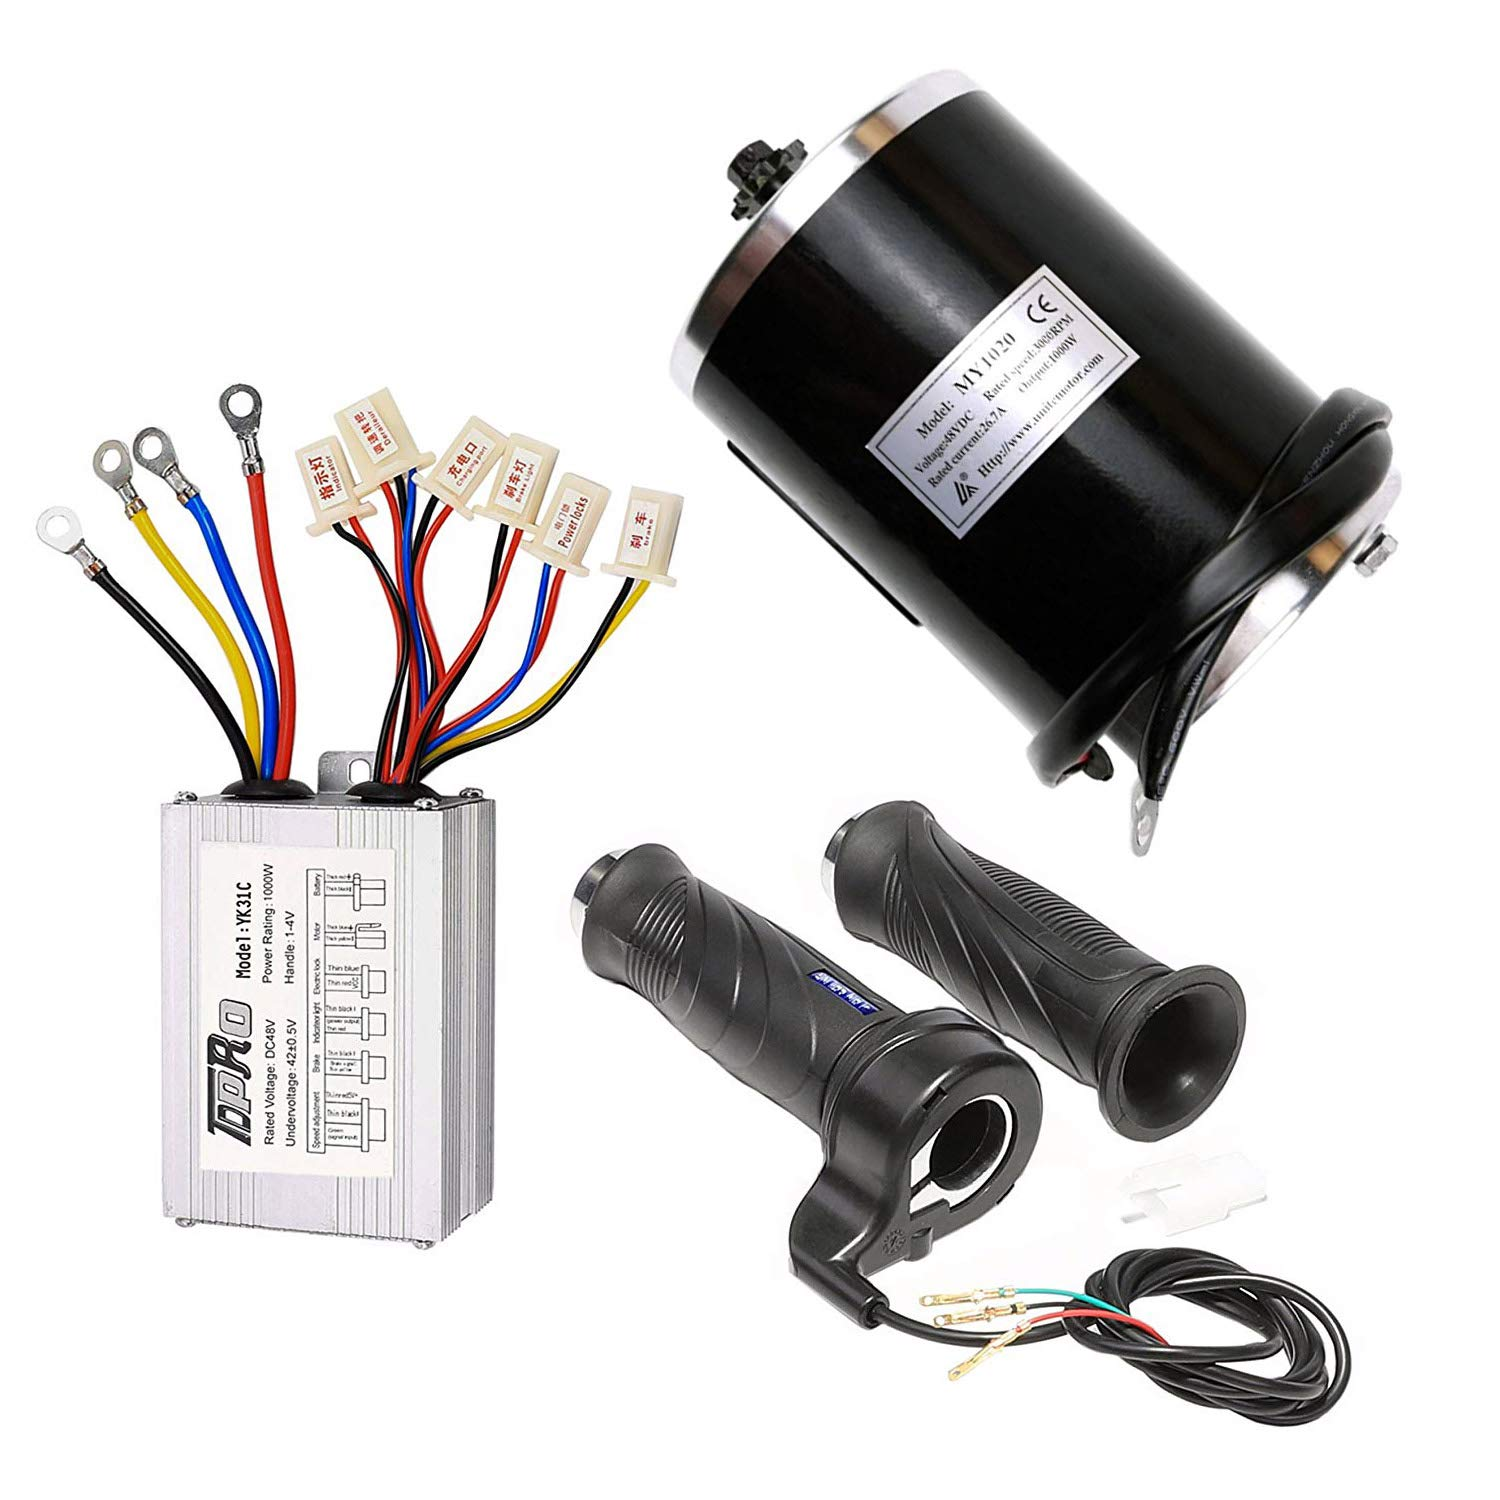 TDPRO 48V 1000W Brushed Speed Motor & Controller & Throttle Grip Kit for Electric Scooter Go Kart Bicycle e Bike Tricycle Moped by TDPRO